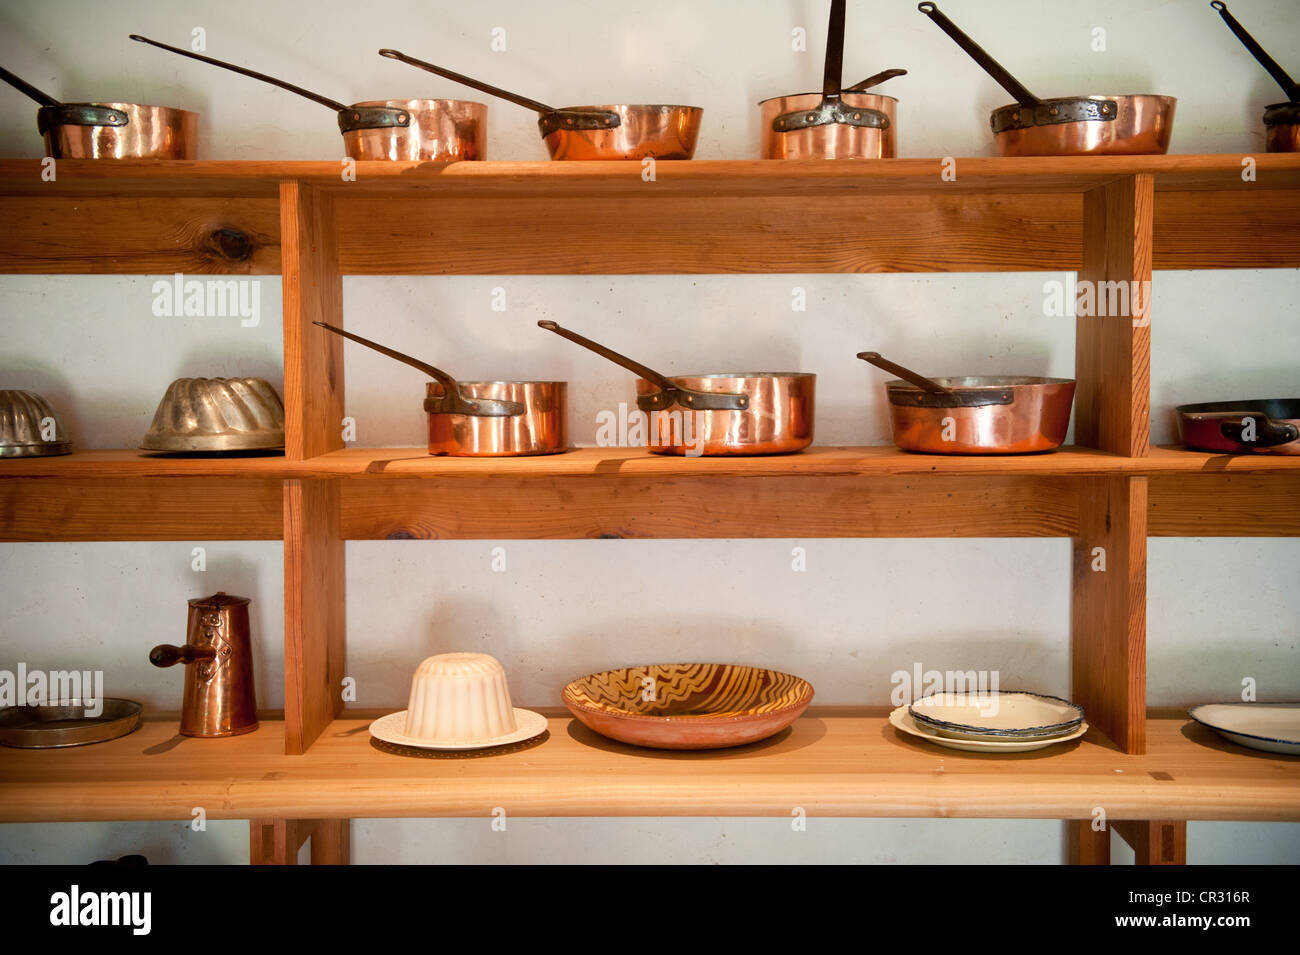 shelves of copper pots and pans in a kitchen on thomas monticello estate in - Copper Pots